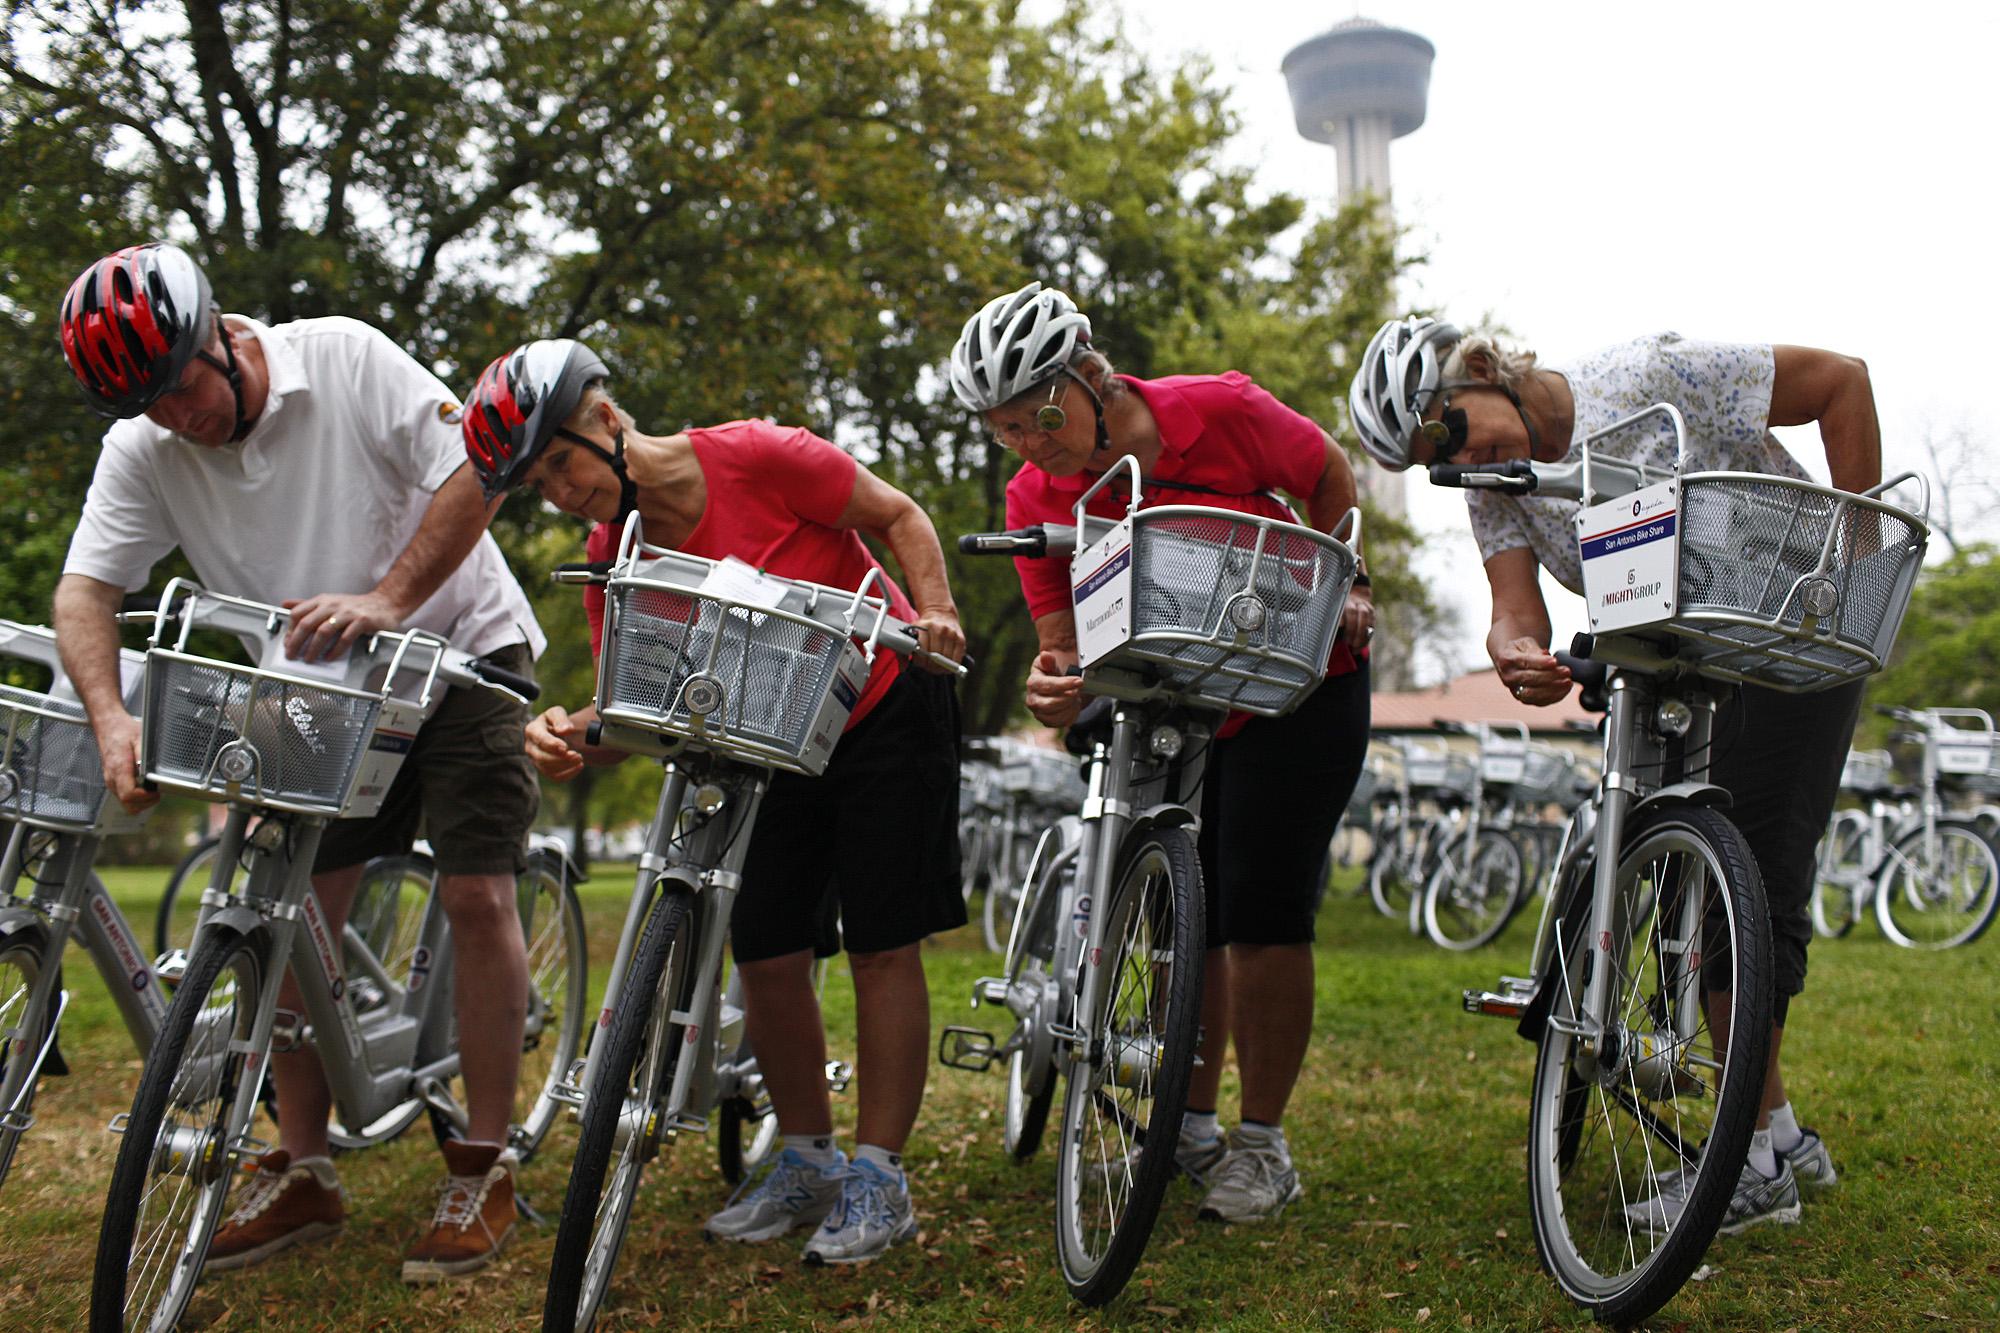 Bicycle sharing launched in S A  - San Antonio Express-News